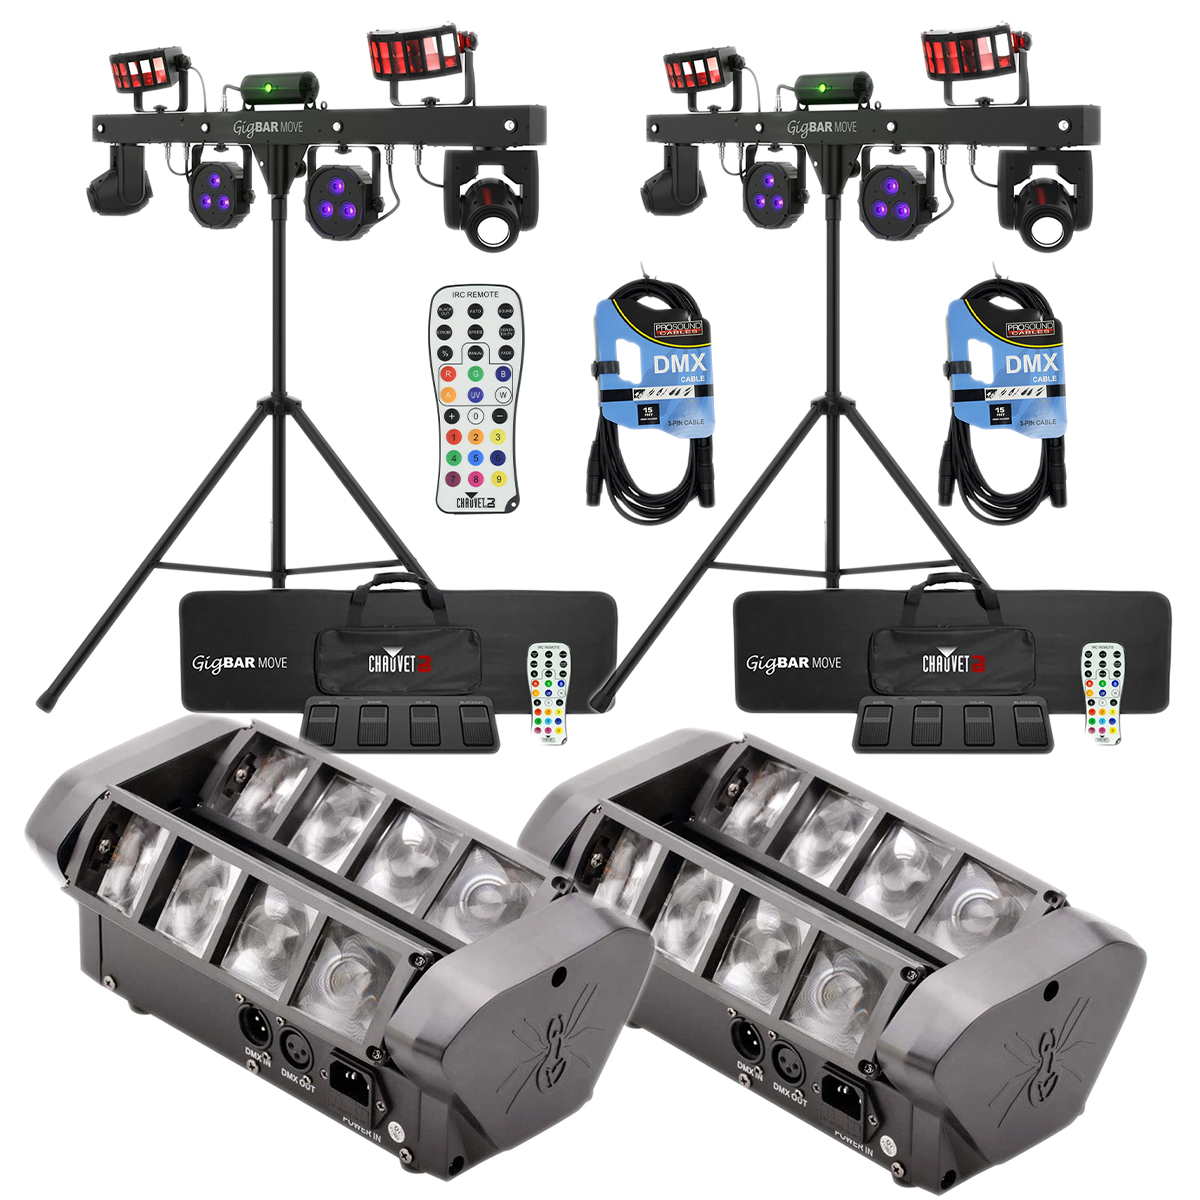 4-CHAUVET-DJ-GigBAR-Move-5-in-1-Lighting-System-2-HSL-Moving-Head-Light-2-Remote-Control-DMX-Cable-2-1599.98.png